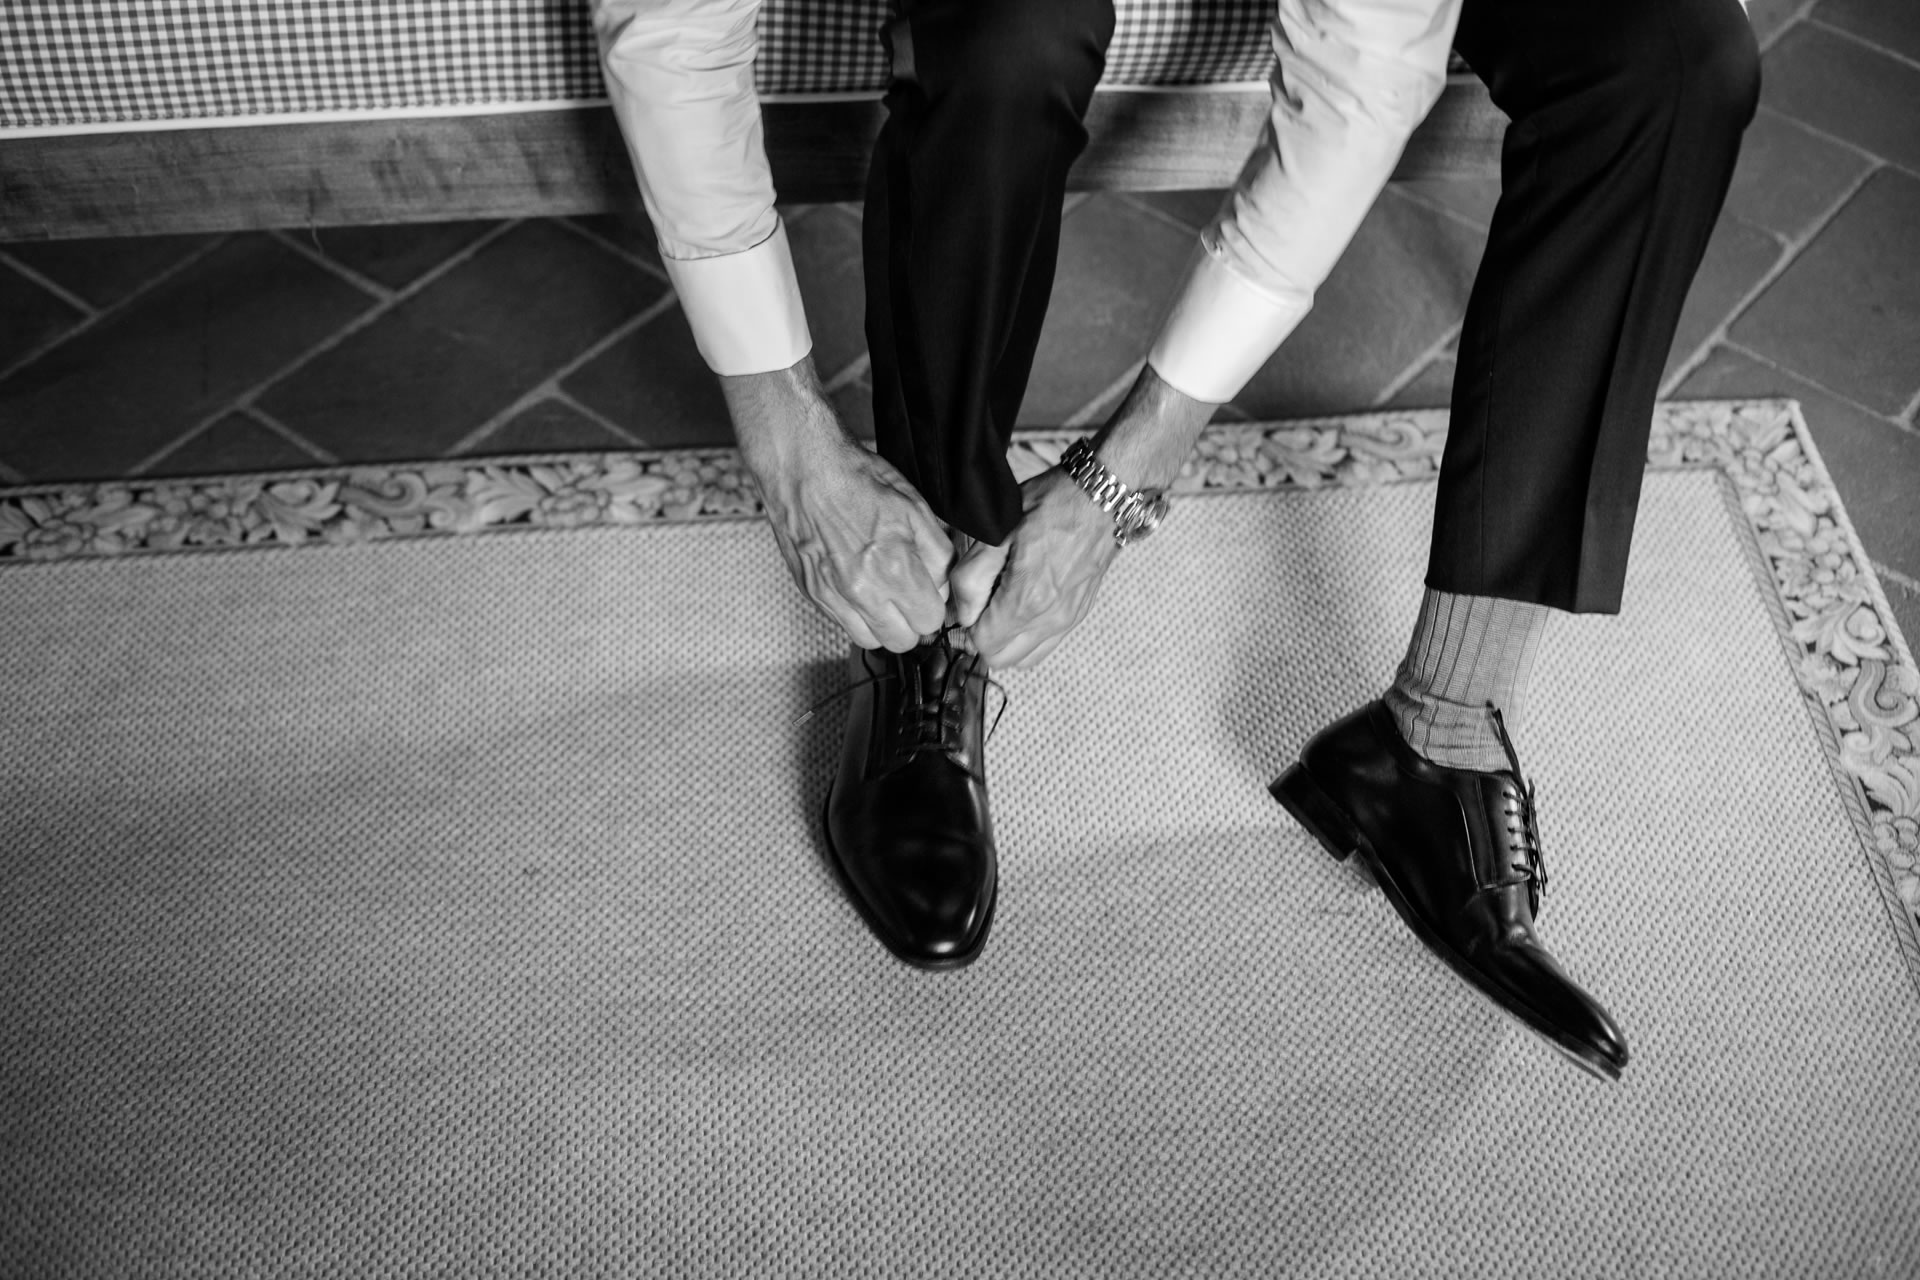 Shoes - 5 :: Exciting wedding in the countryside of Siena :: Luxury wedding photography - 4 :: Shoes - 5